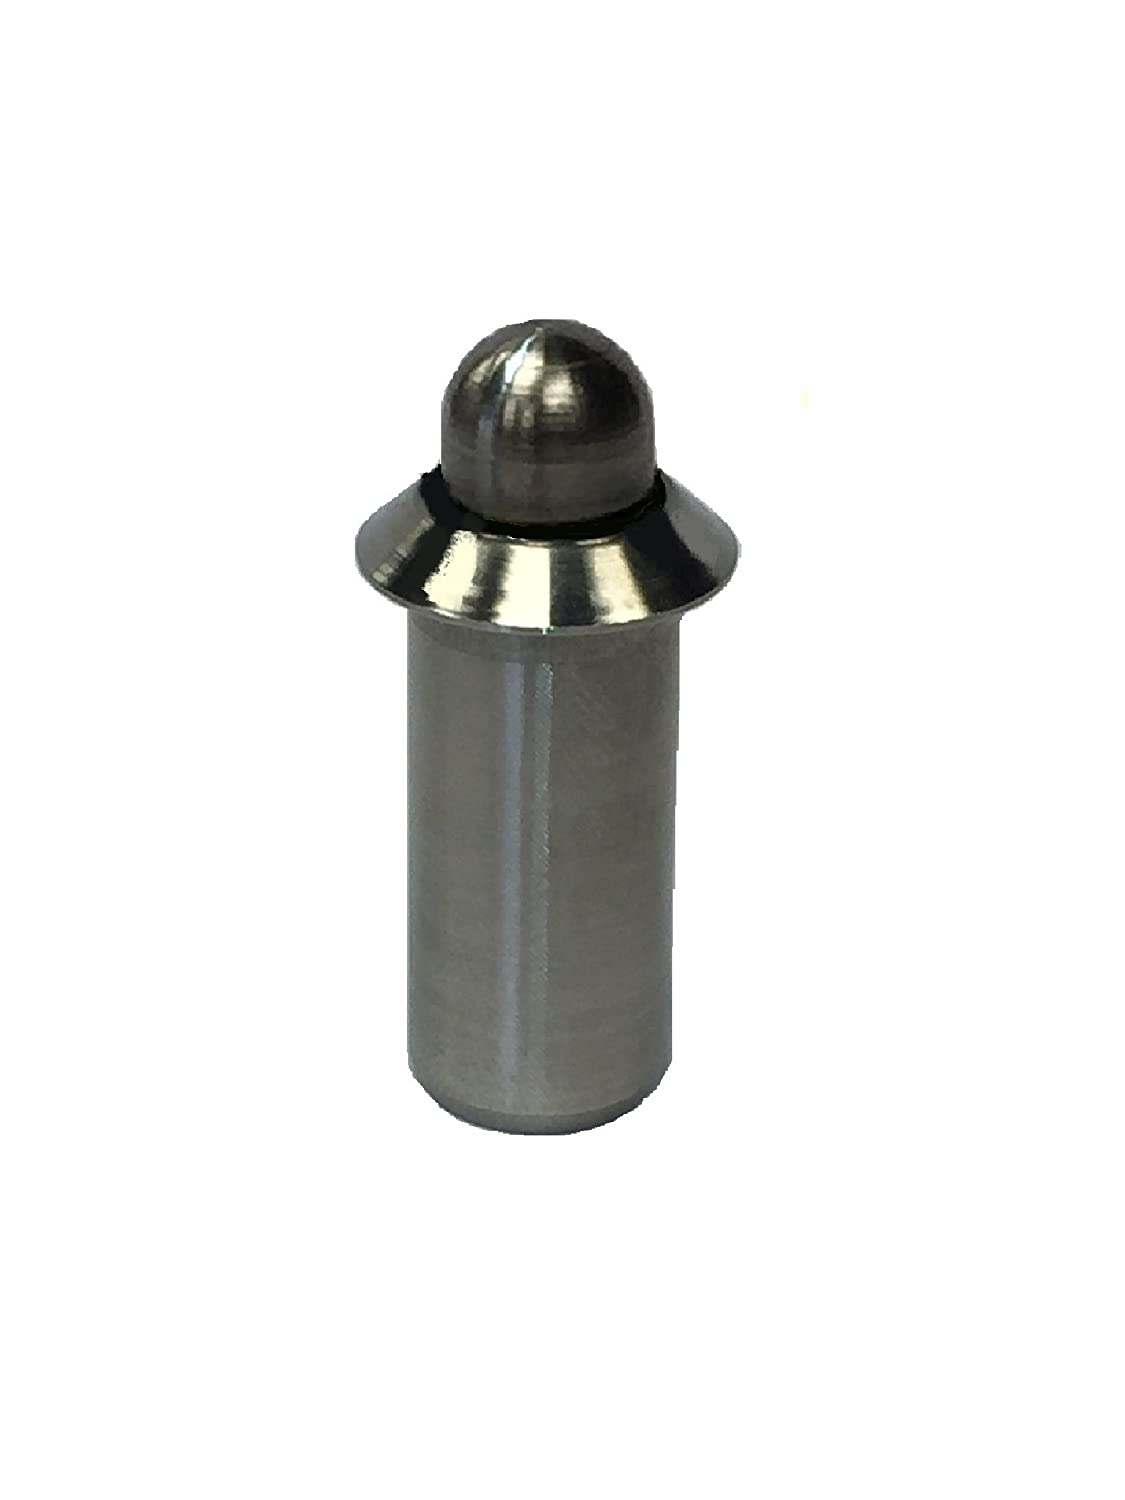 Inc. Ball /& Spring Plunger SSWPF10-3A Press Fit Round Nose Plunger Light End Force S/&W Manufacturing Co